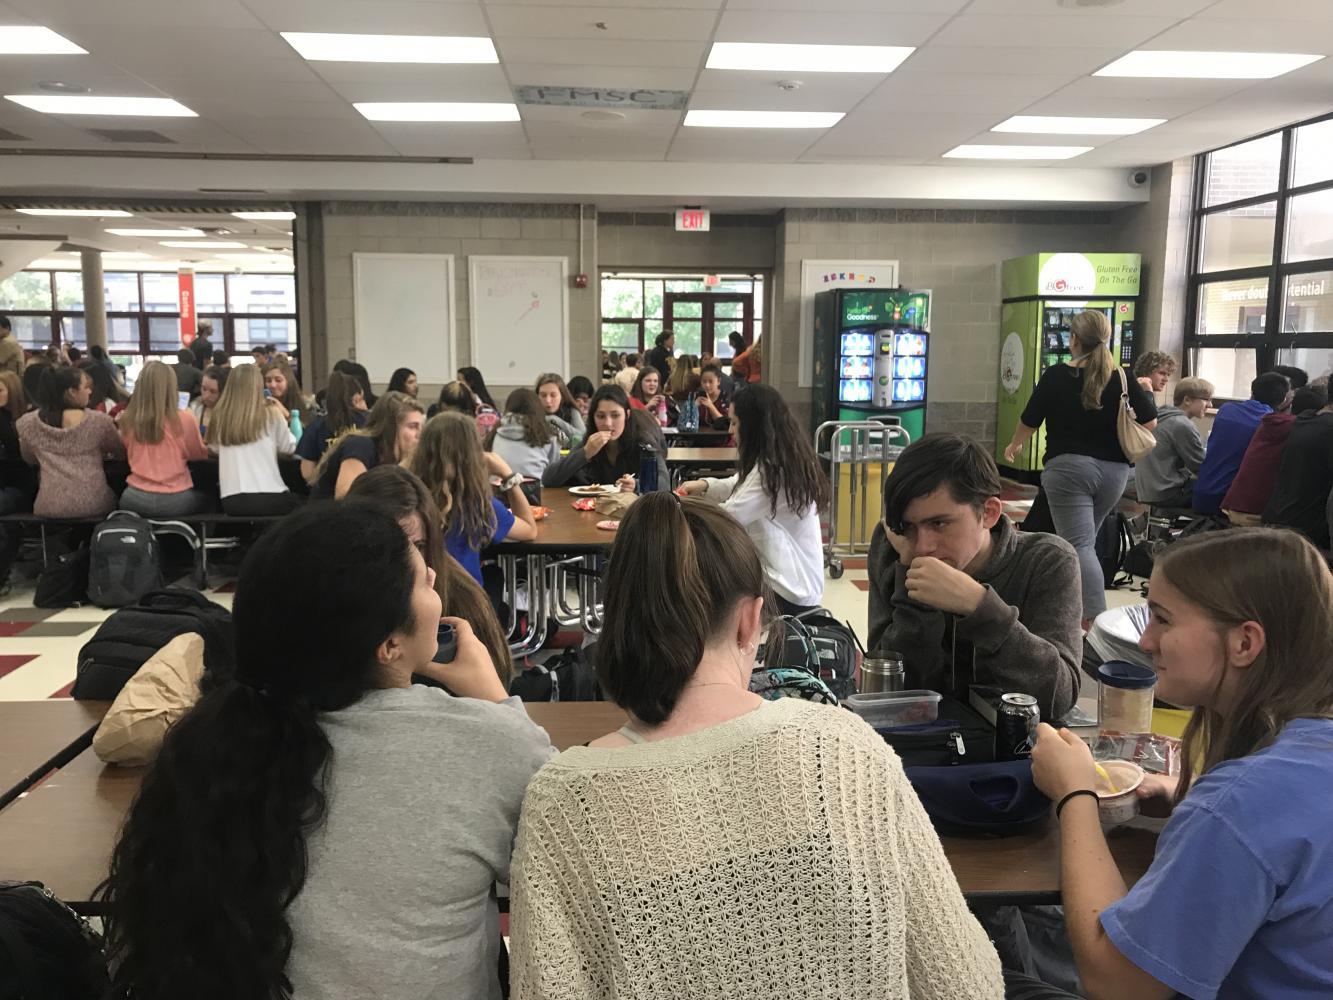 Many lunch periods are jam-packed with students, but an open campus could help solve that problem.